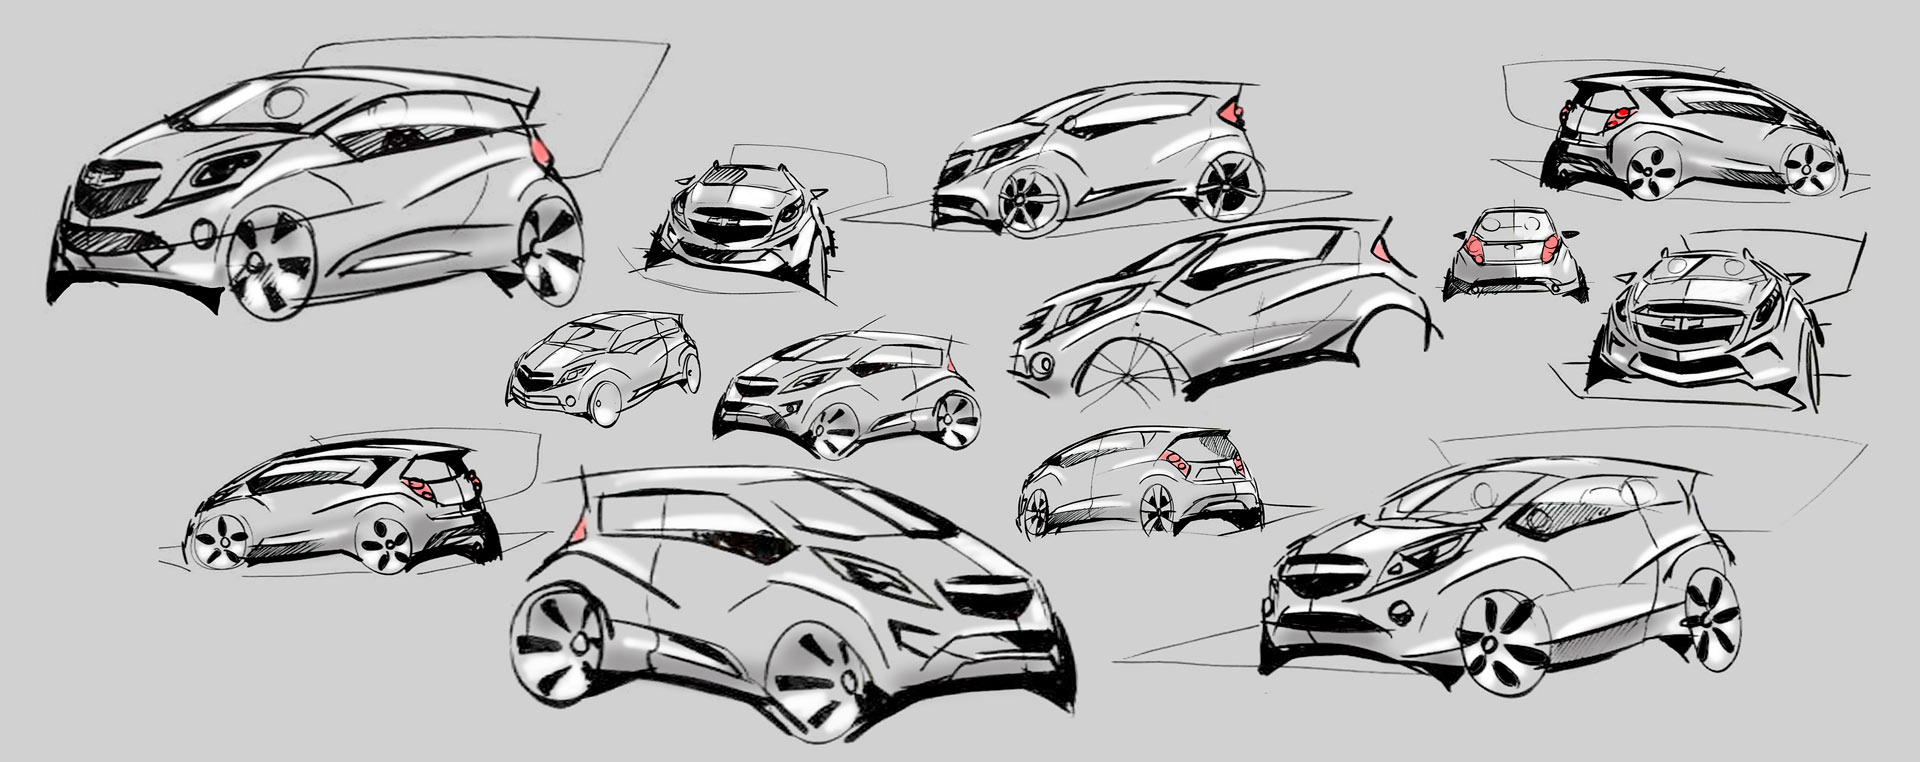 Decalogo Continuacion De Conceptos in addition Fj671 2 Lift Part together with Wiring Diagram Infiniti Q45 further Nissan Forklift Wiring Harness in addition Concept Car Design Sketches On Acura Concept Car Sketches. on 2015 maxima concept